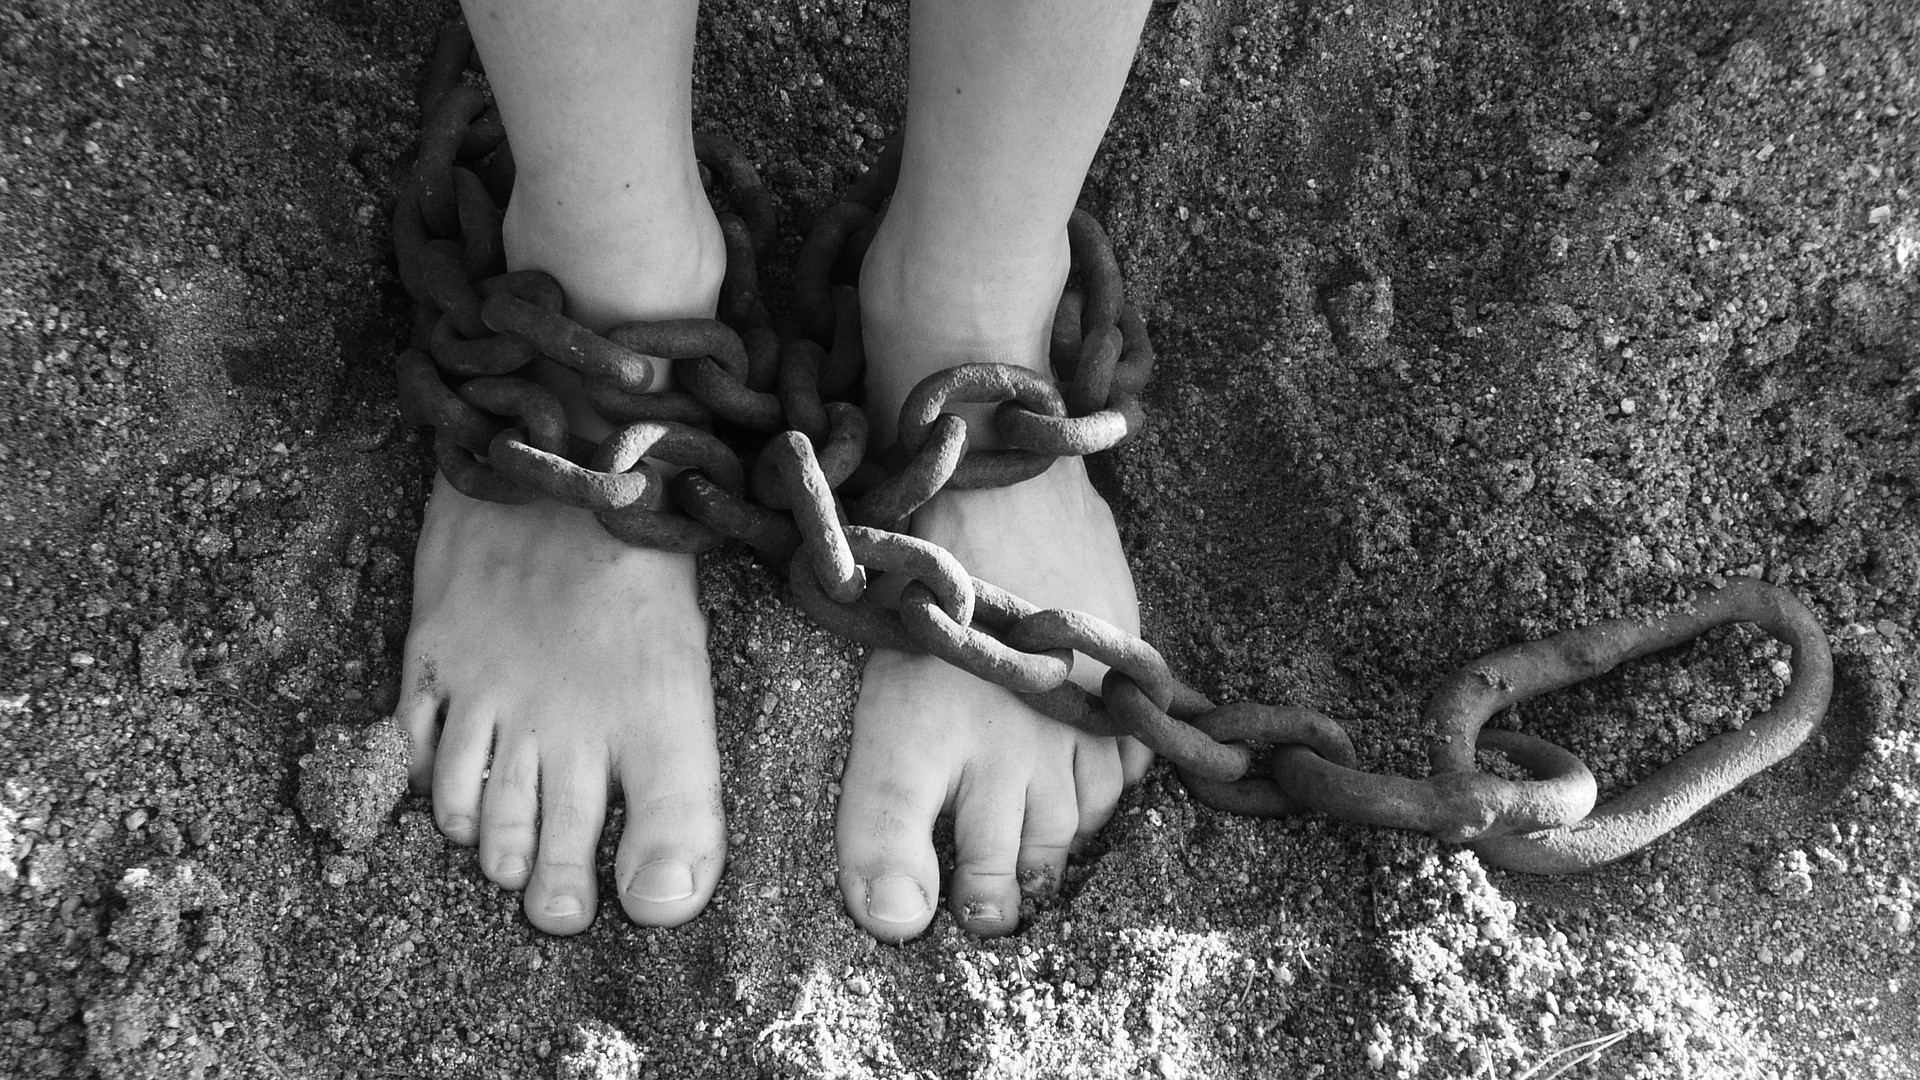 legs and feet in chains